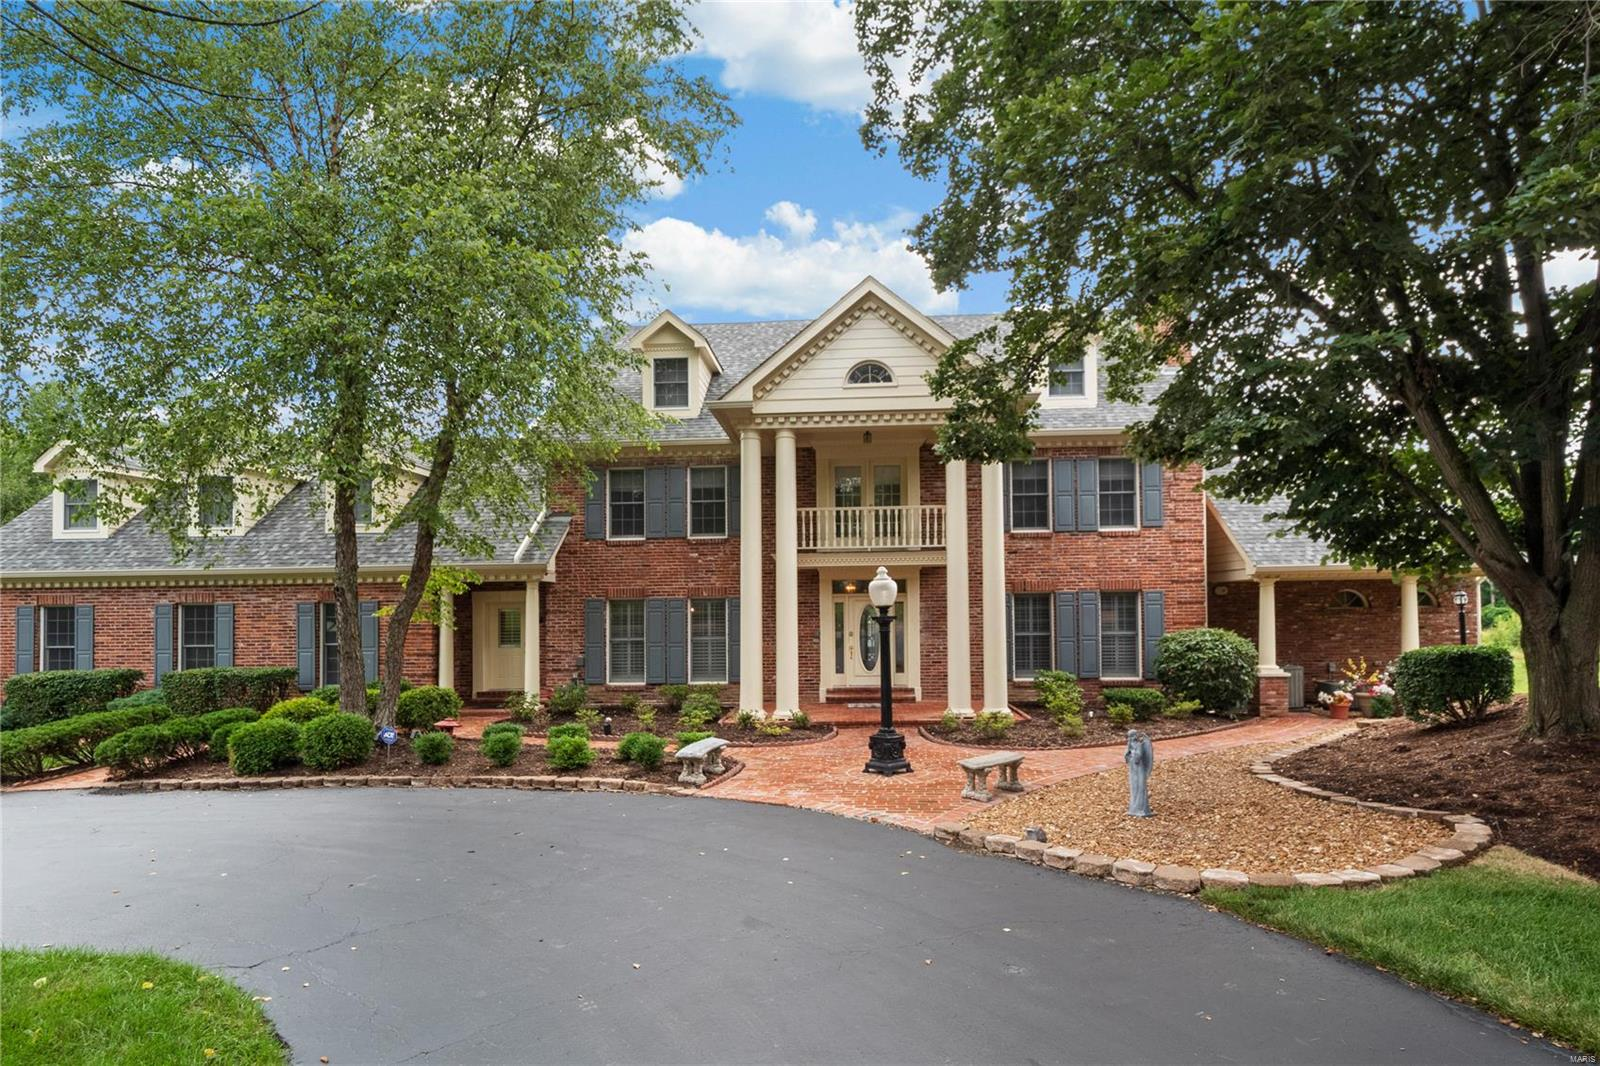 12618 Town and Country Estates Lane, Town and Country, MO 63141